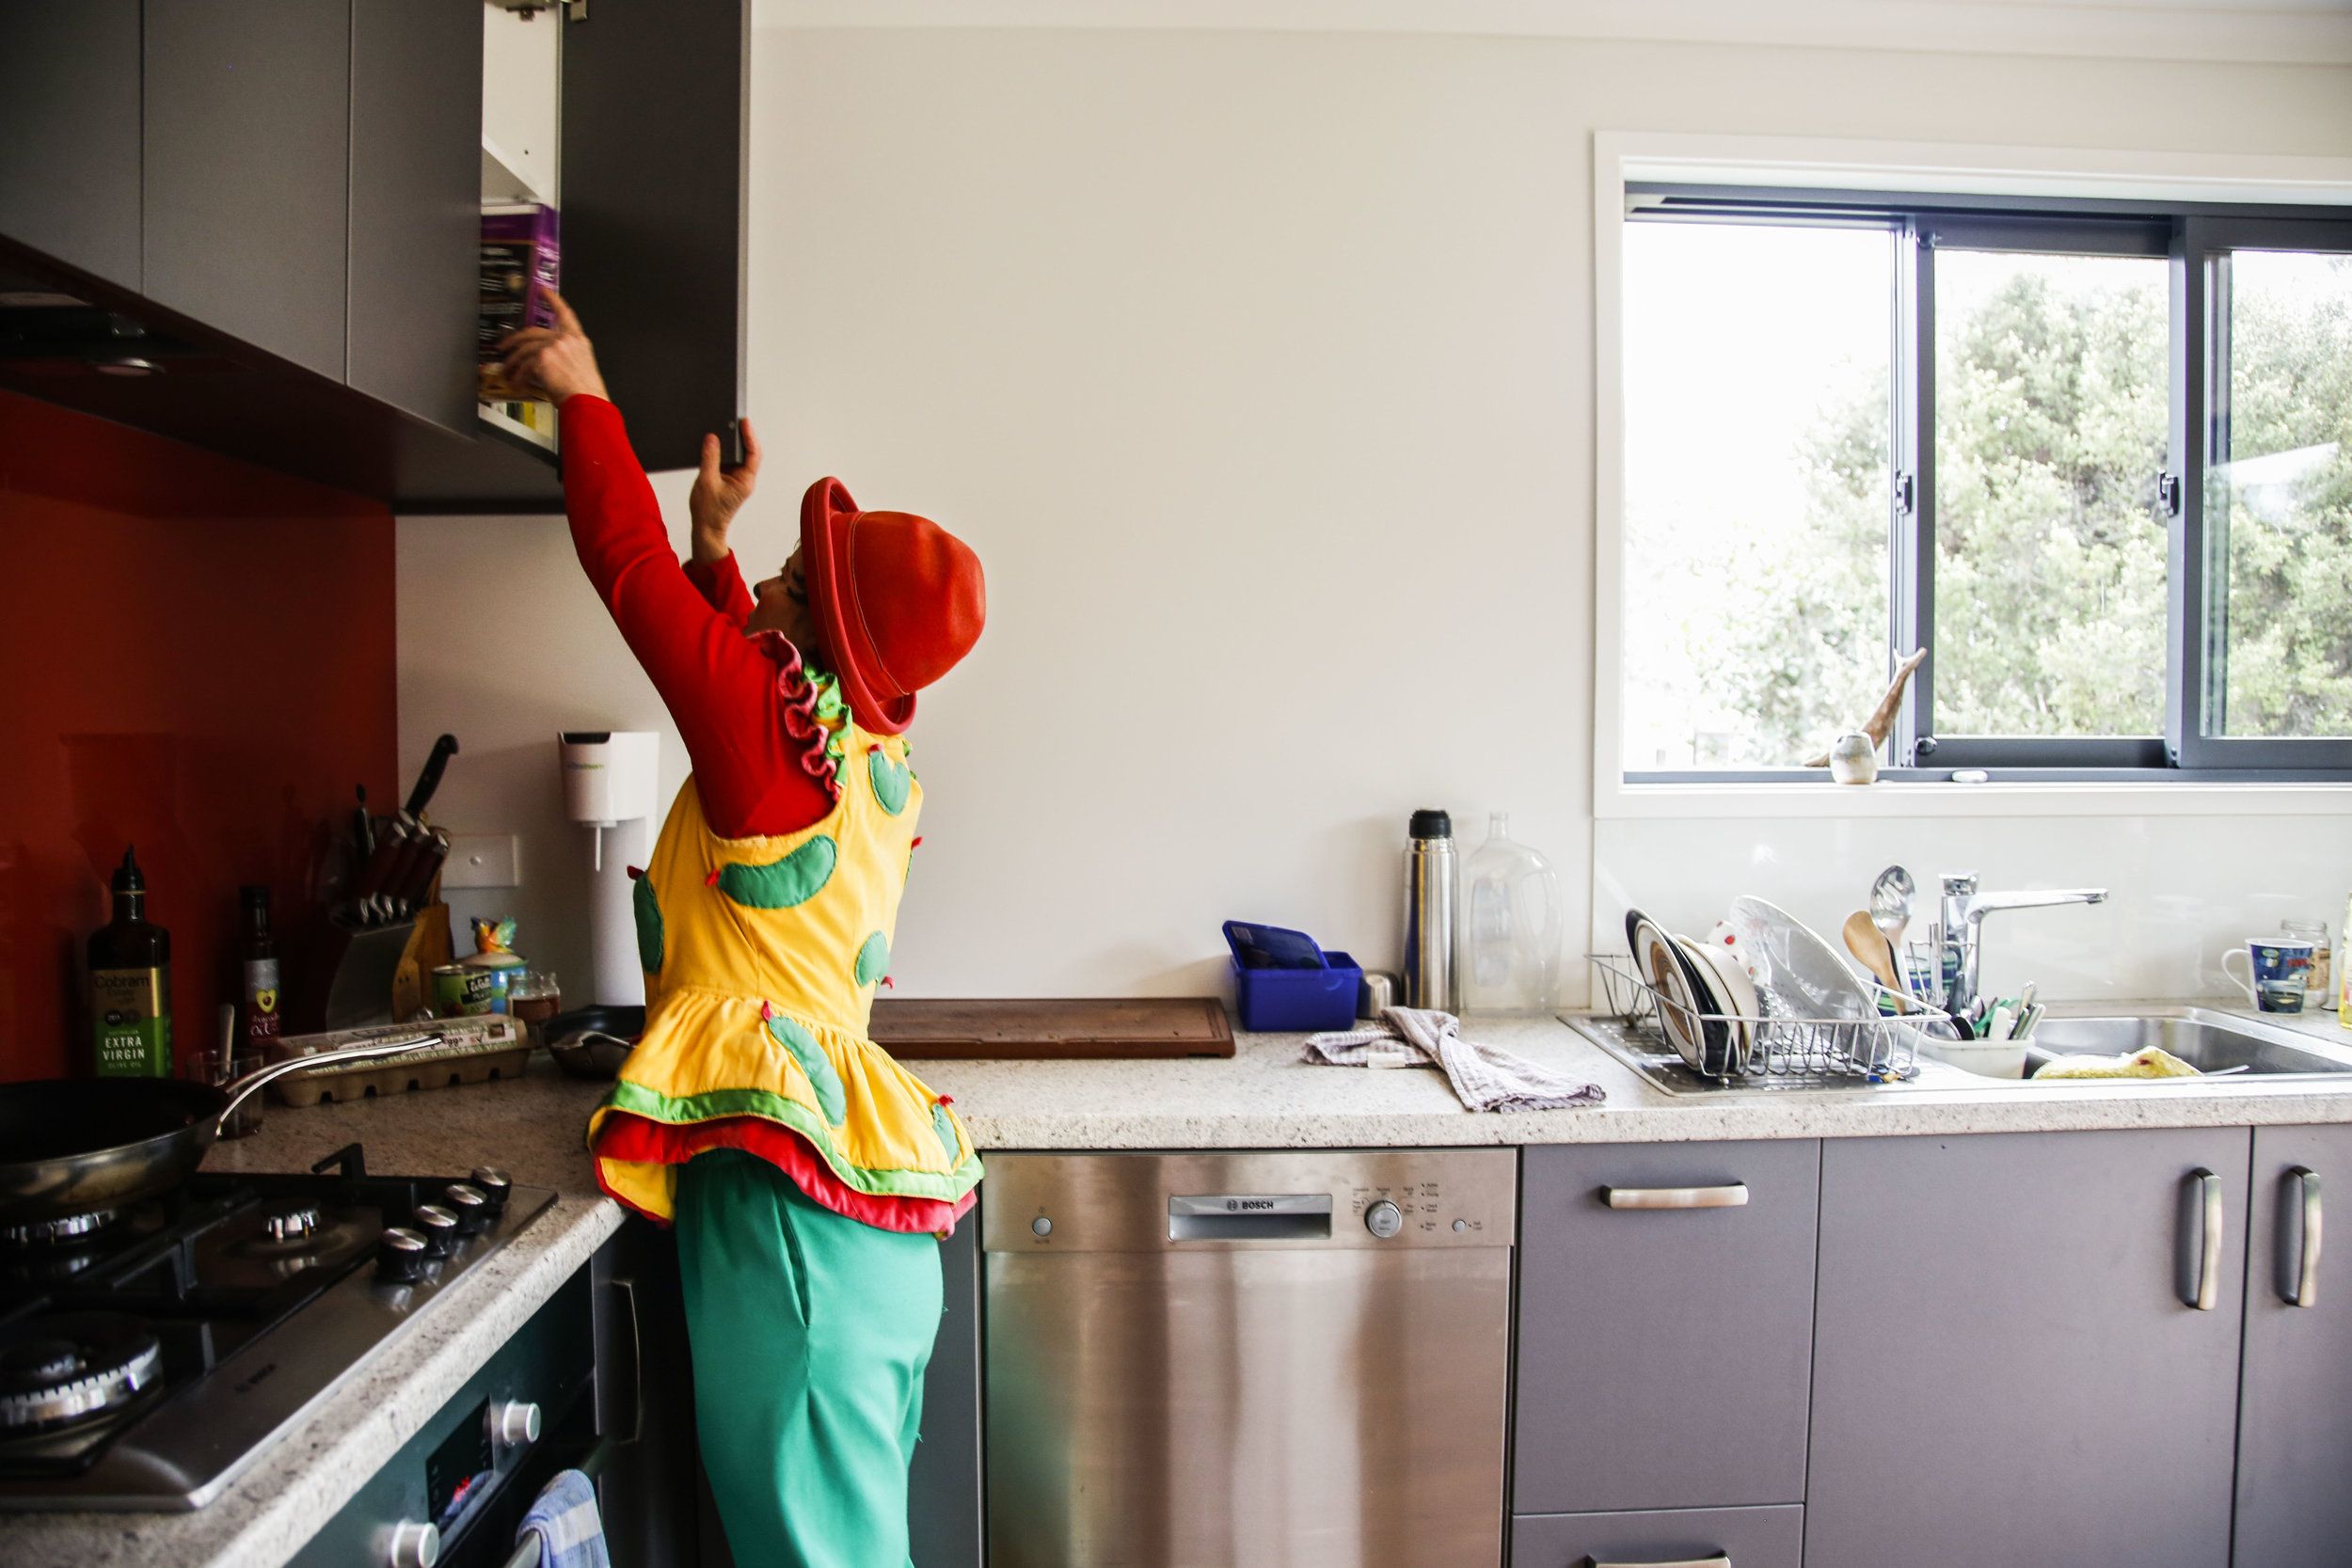 Lisa goes through her kitchen cupboard in her newly remodeled Christchurch, NZ home.